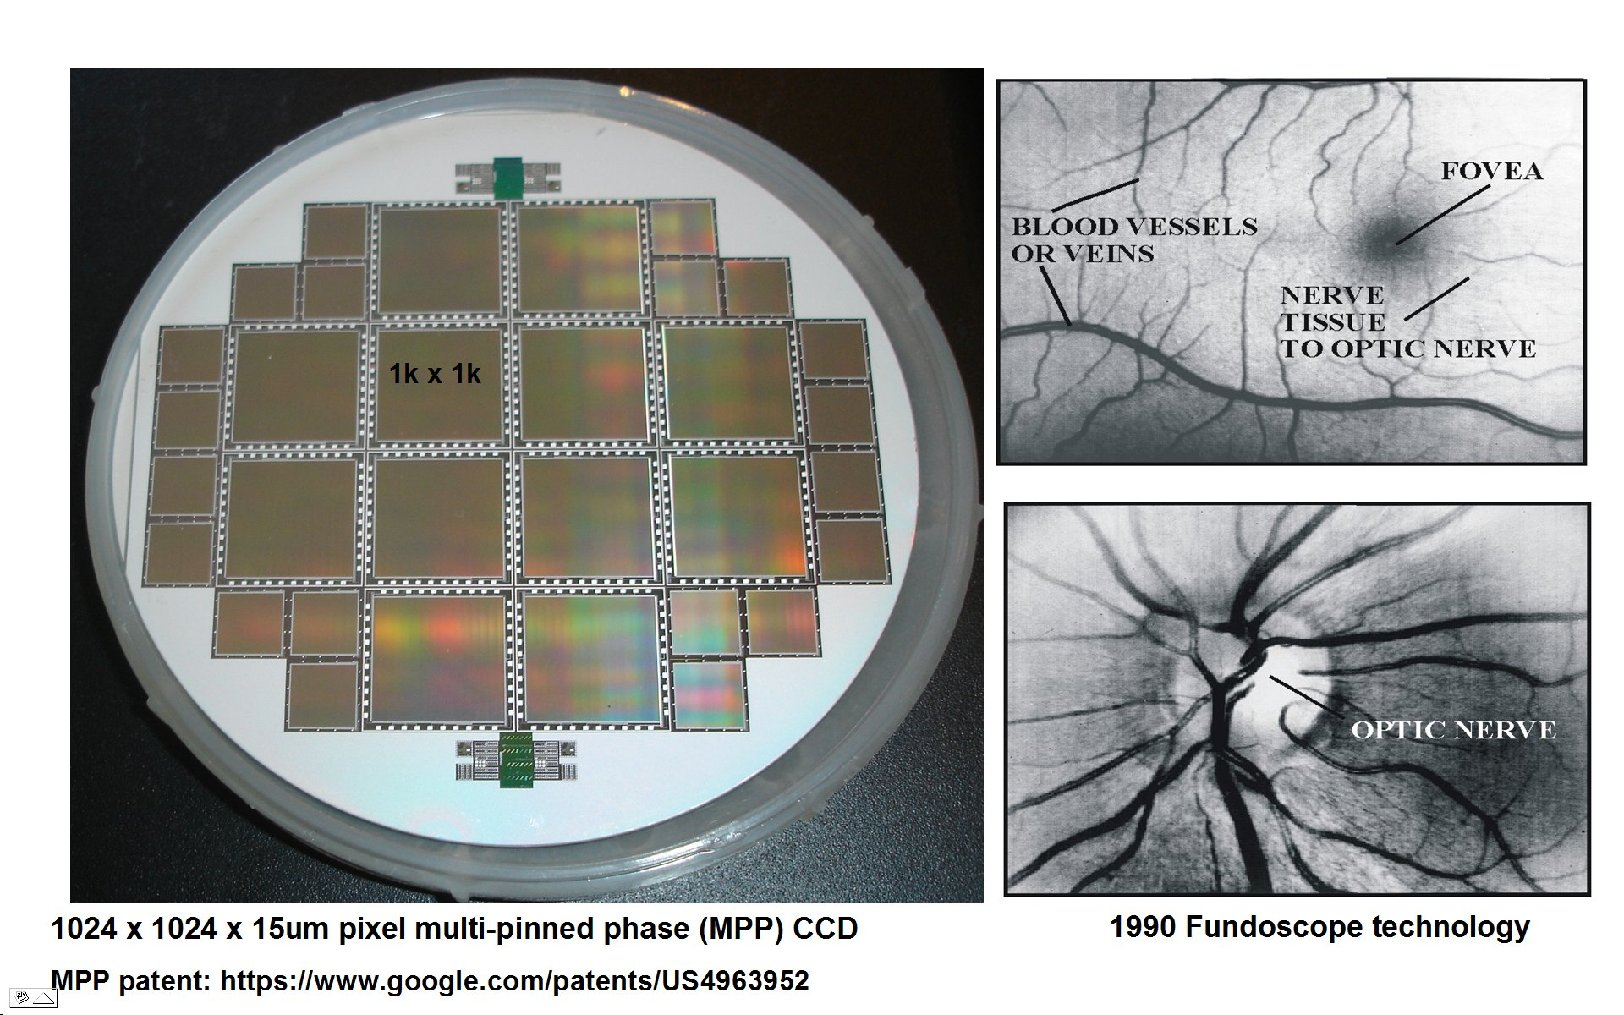 Janesick commercial multi-pinned phase CCD wafer